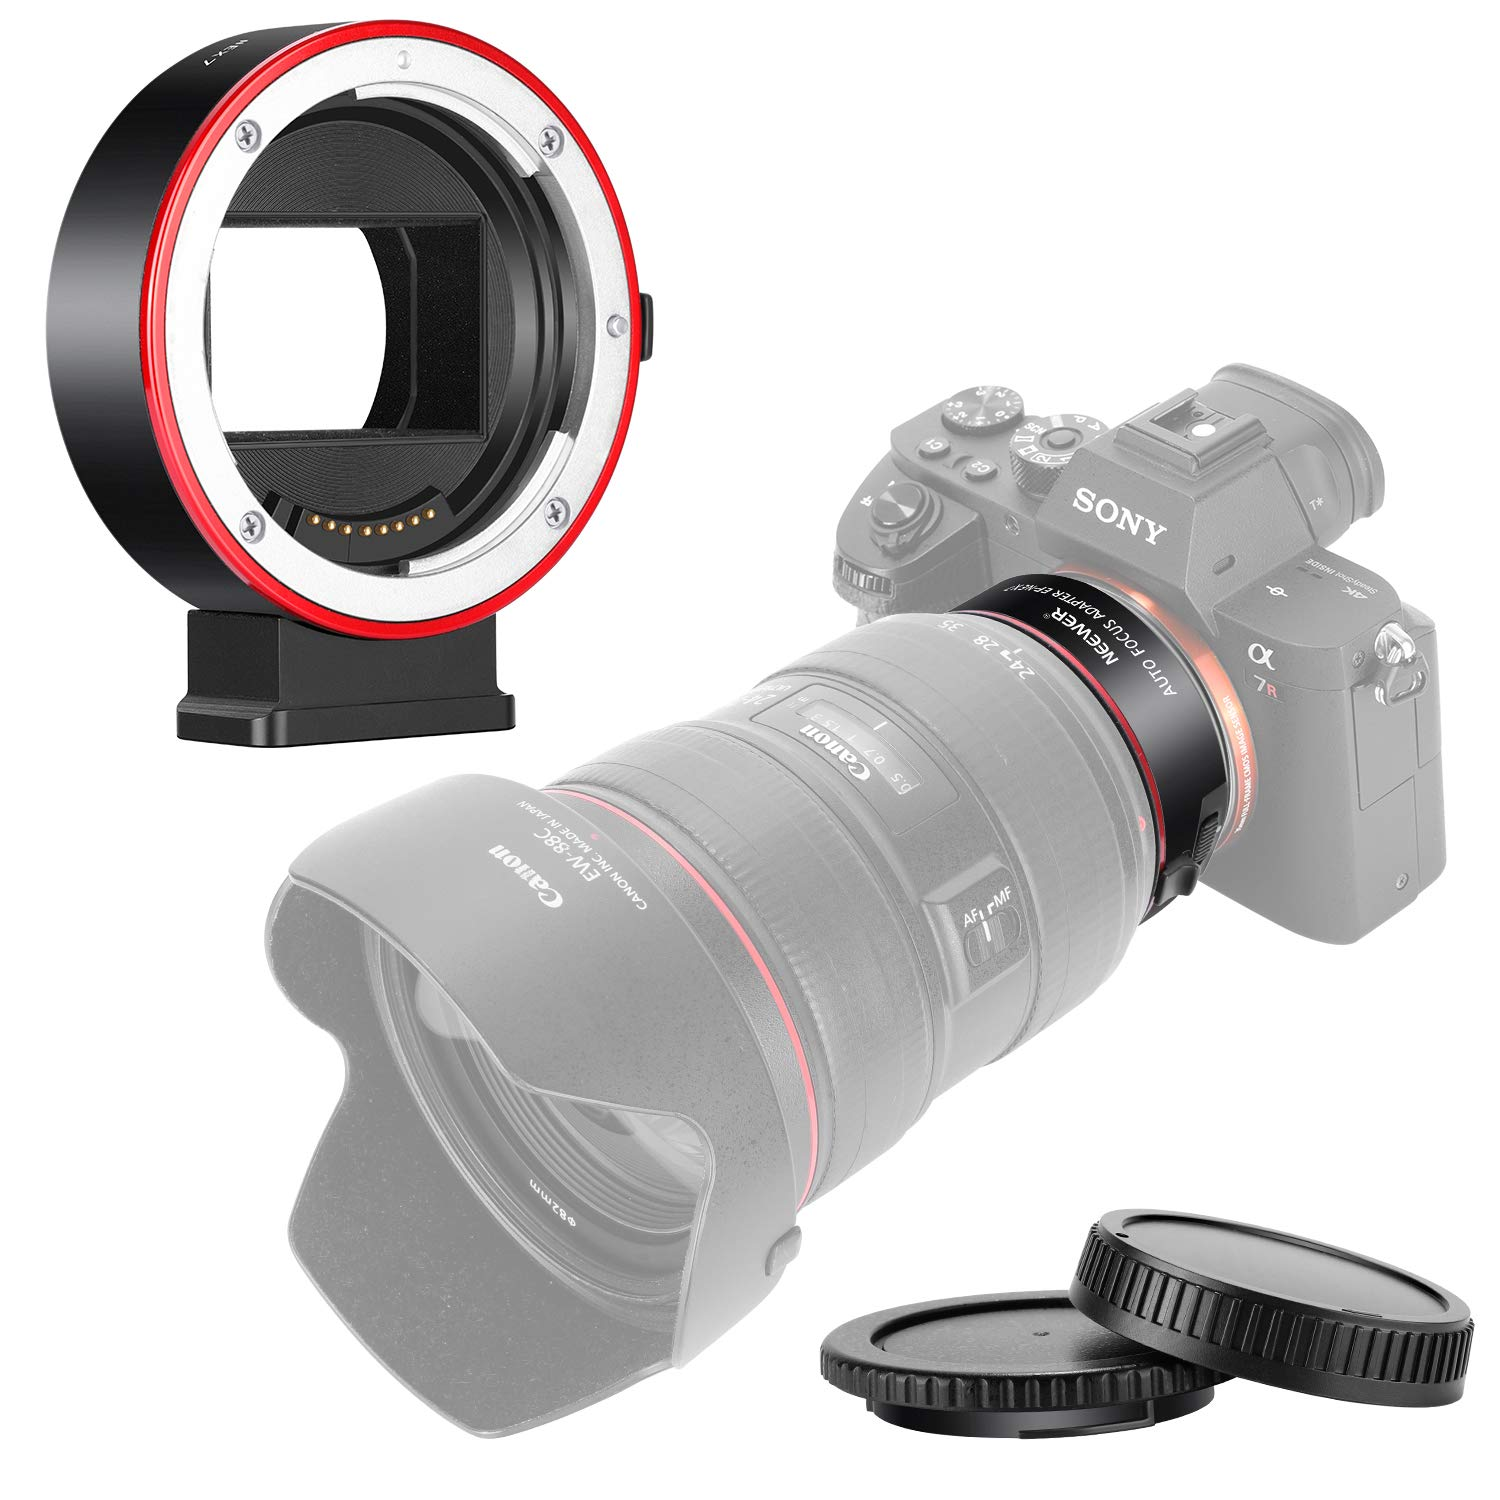 Neewer Electronic AF Lens Mount Adapter Auto Focus Aperture Control Compatible with Canon EF/EF-S Lens to Sony E-Mount Cameras for Sony A9/A7R3/A7R2/A7M3/A7M2/A6500/A6300/A7R/A7S2/A7S/A7/NEX7/A6000 by Neewer